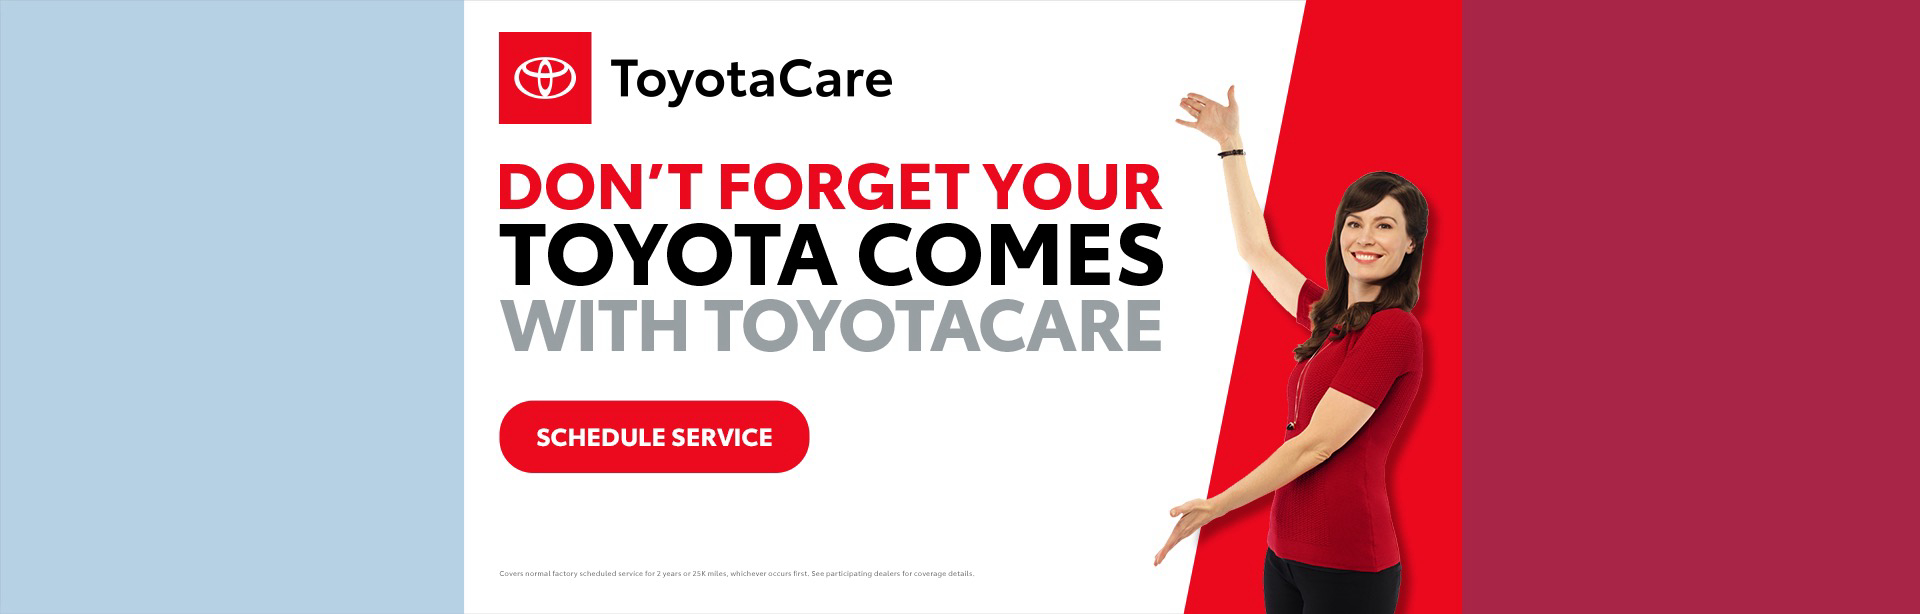 10-19_01_National-2019---October---NAT---ToyotaCare-Home-Page_1920x614_679b_All-Models_O_xta.jpeg